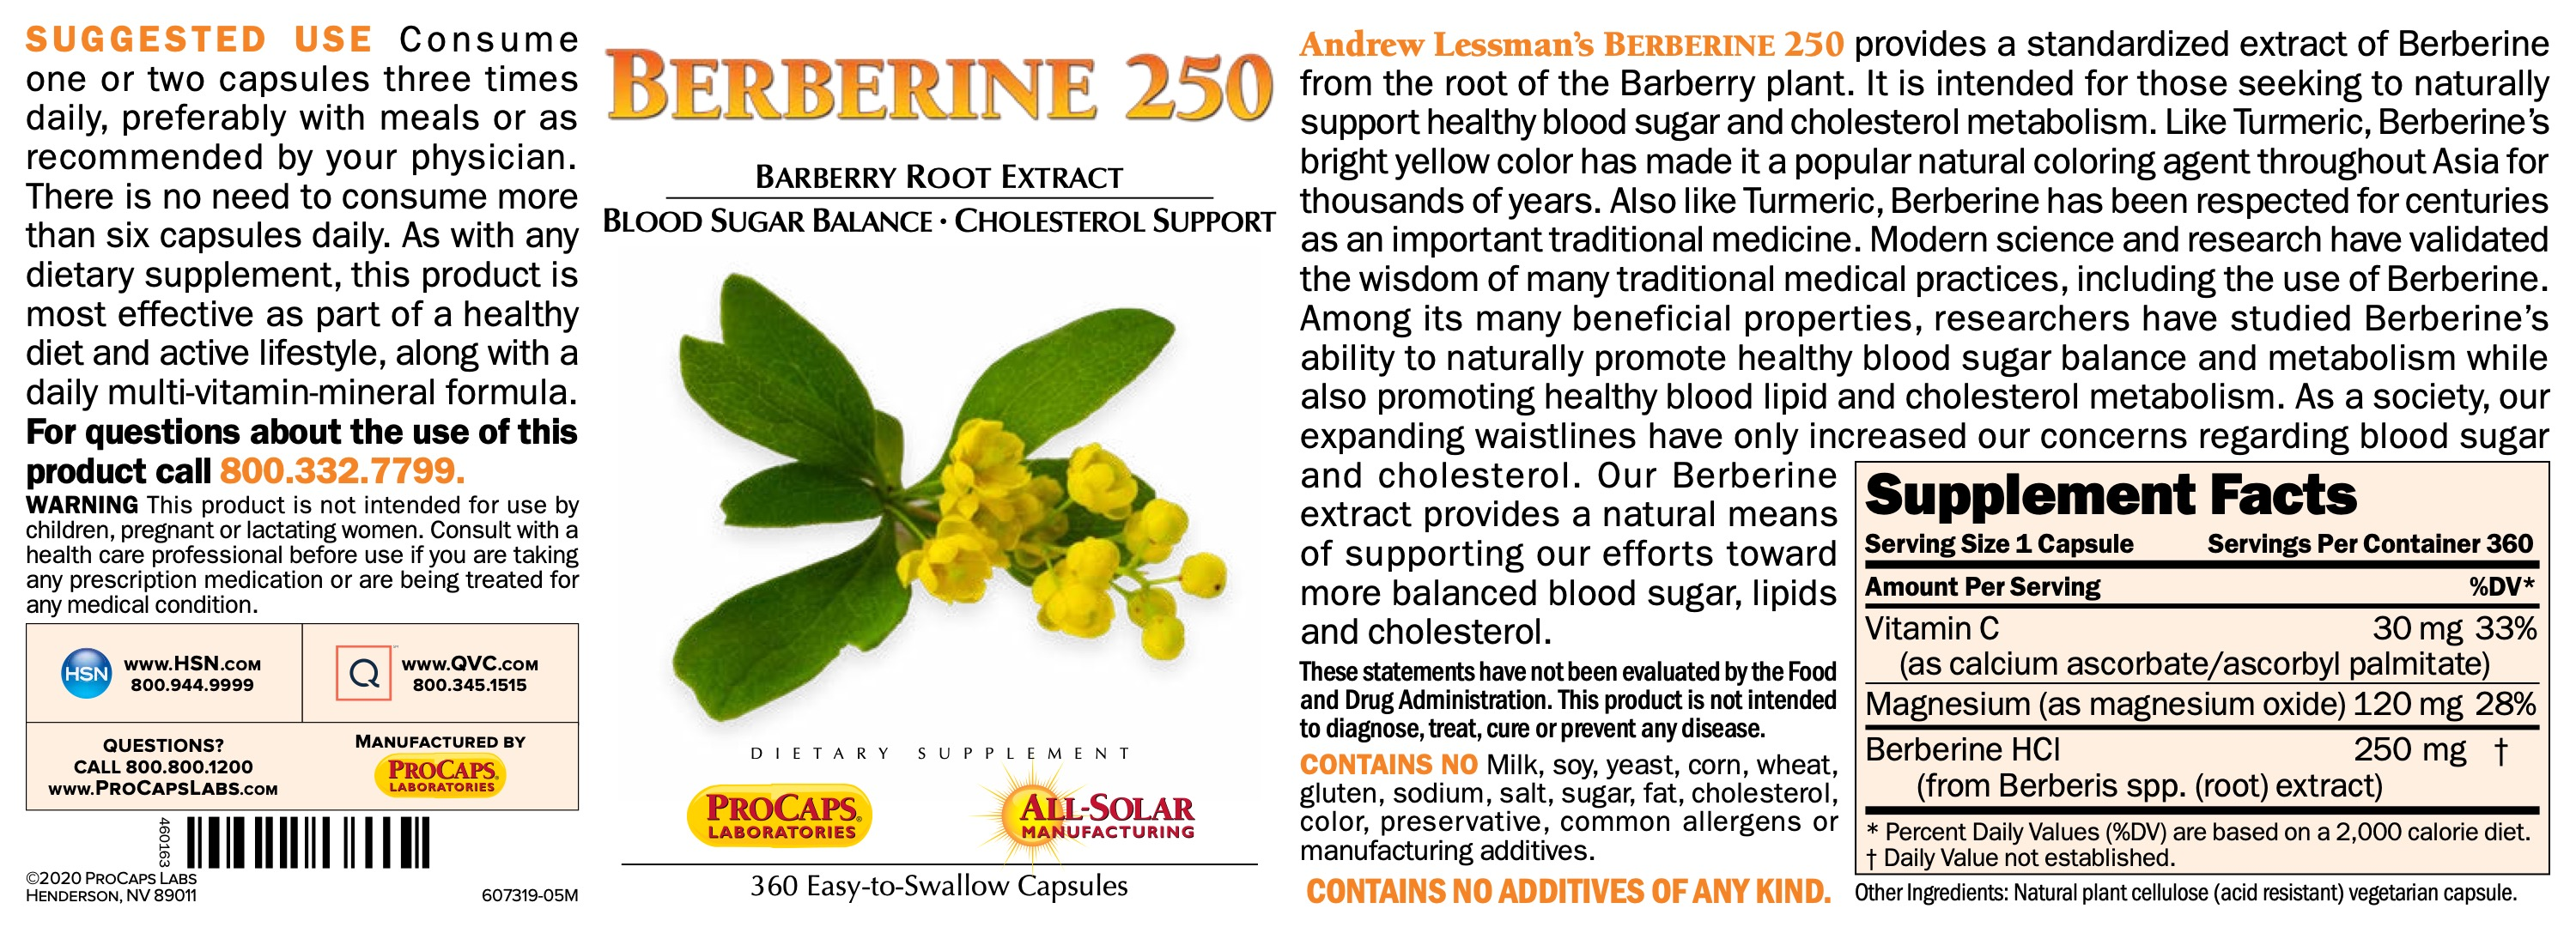 Berberine-250